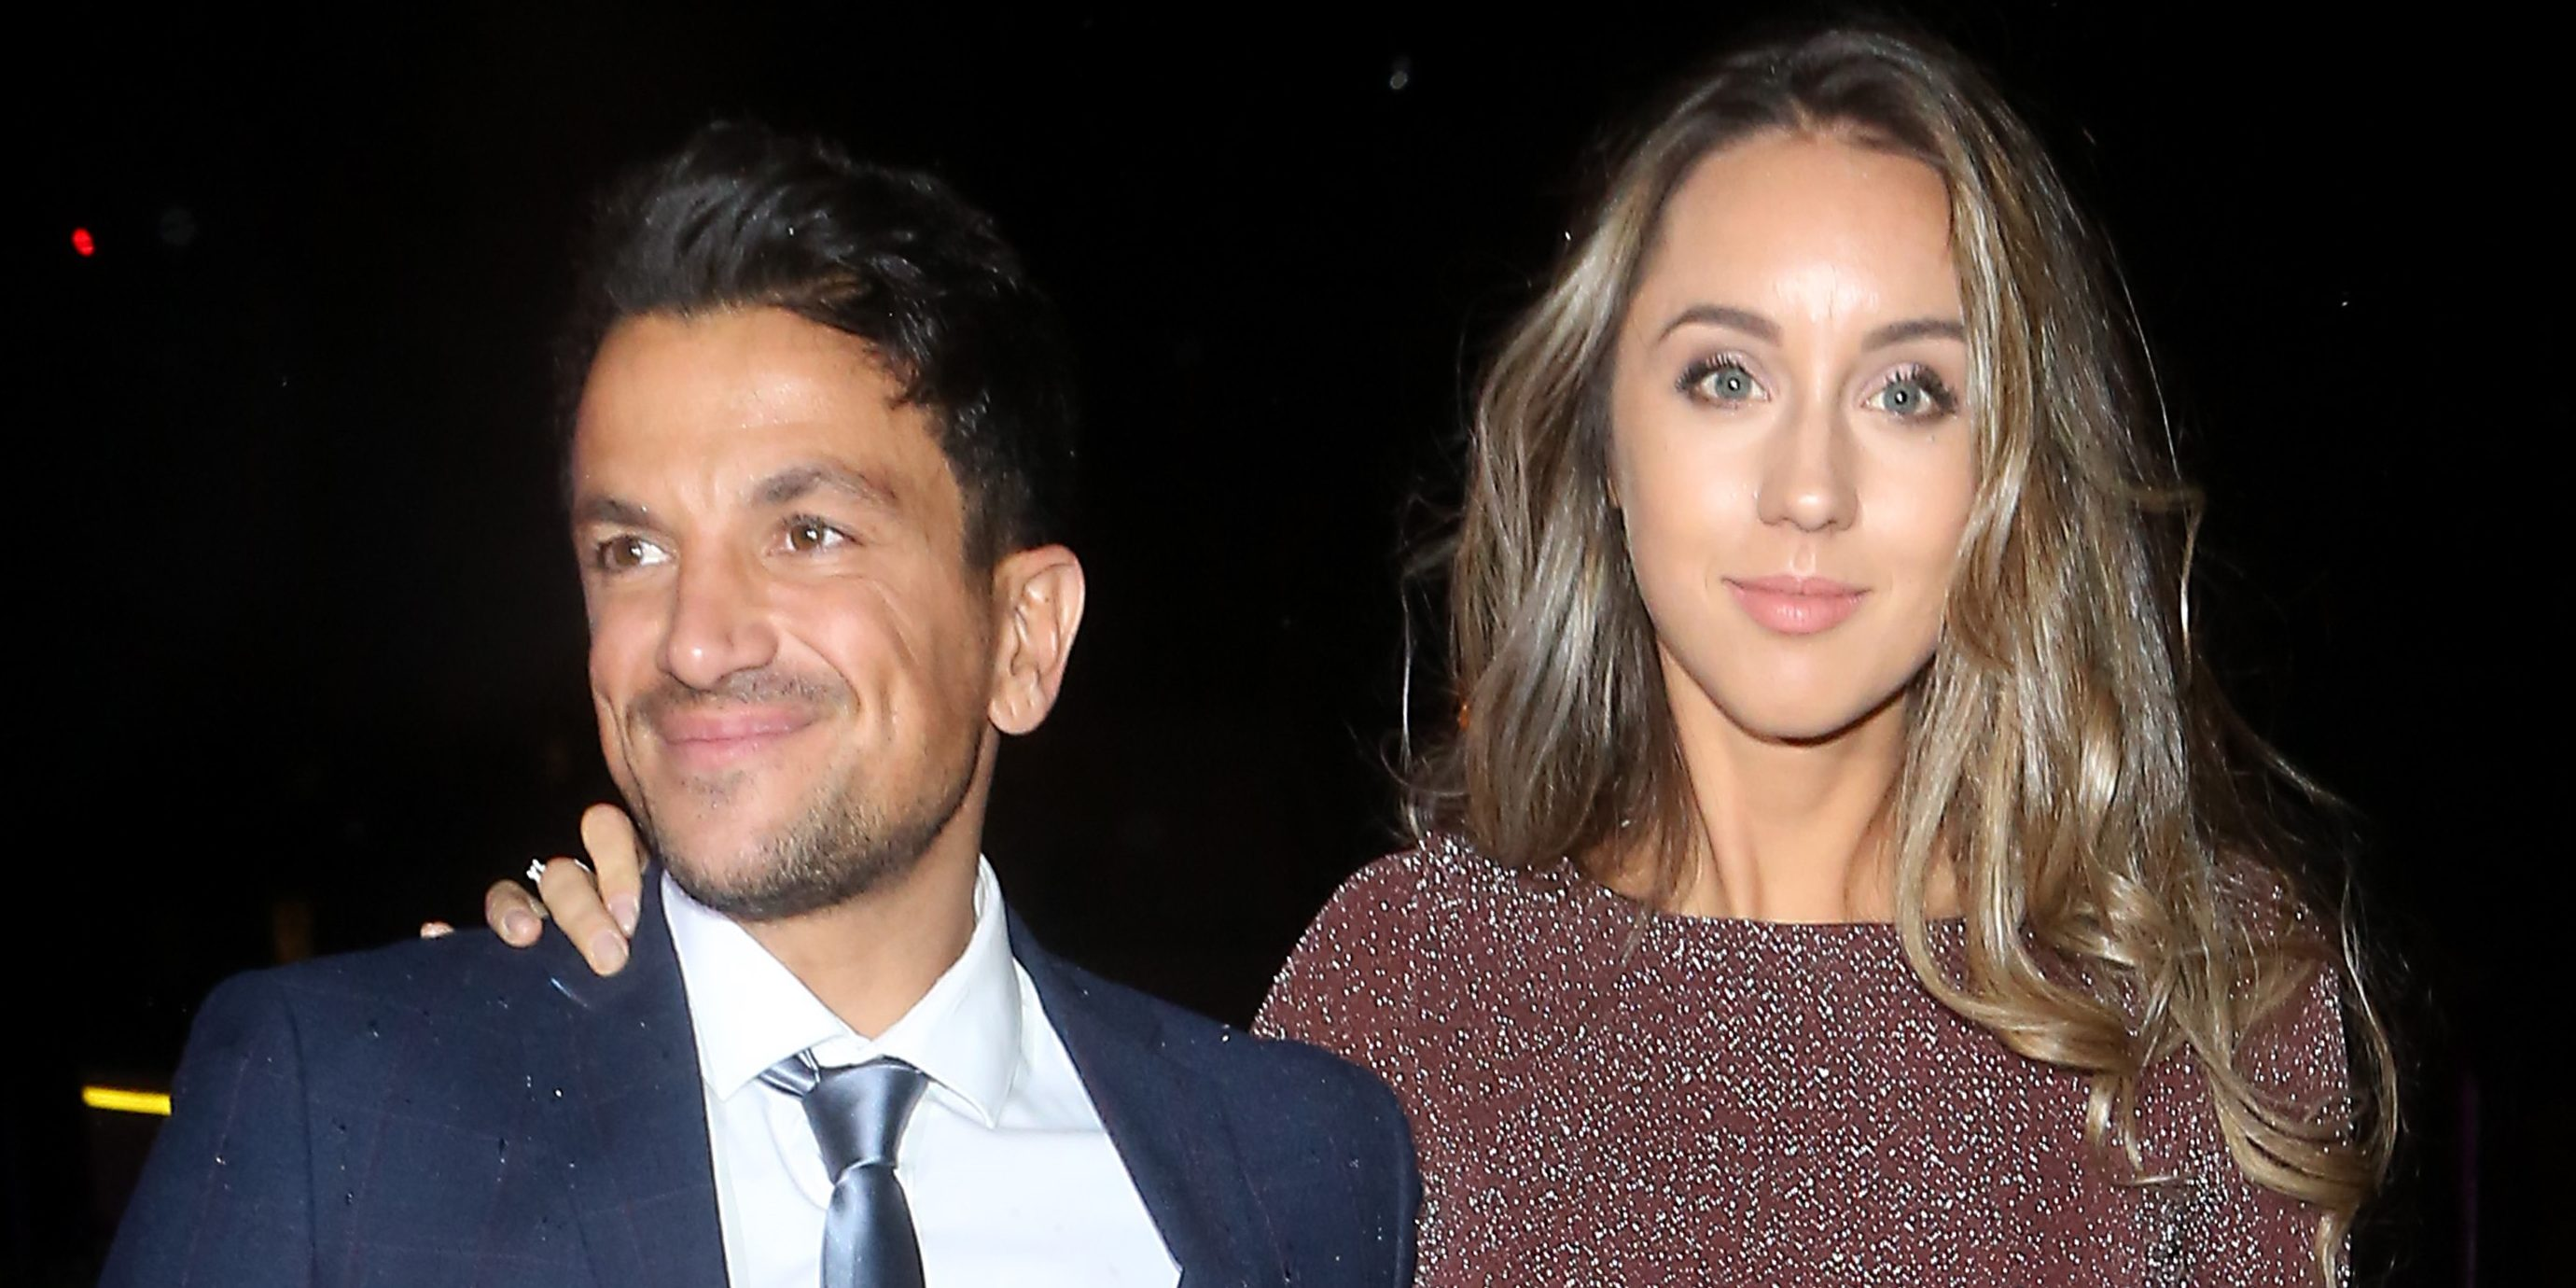 Peter Andre sparks rumours of another pregnancy after cryptic Instagram post